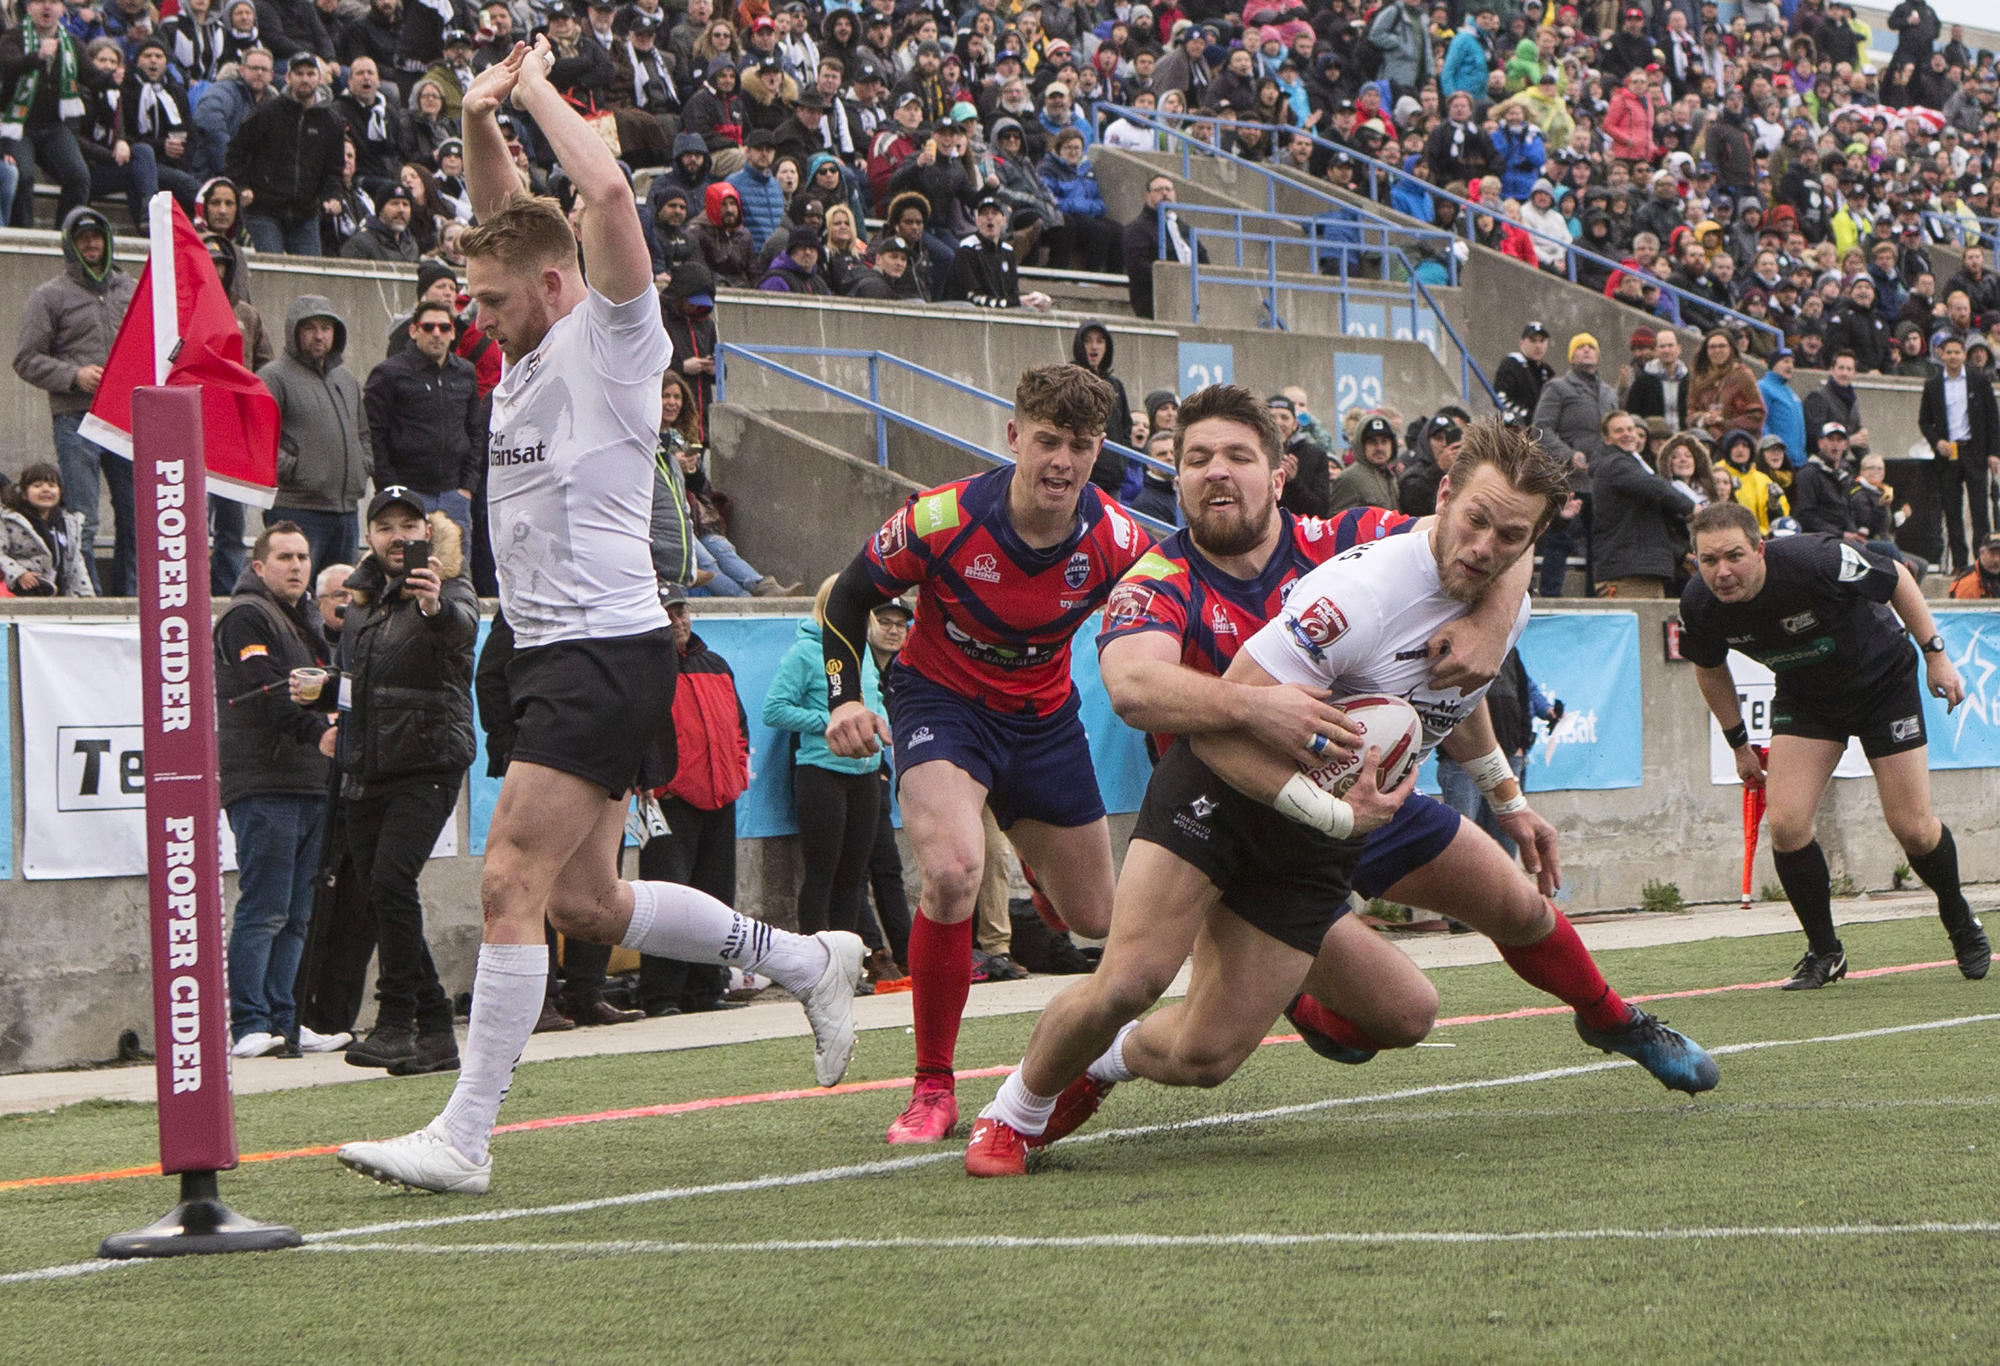 Toronto Wolfpack's Ryan Burroughs scores a try